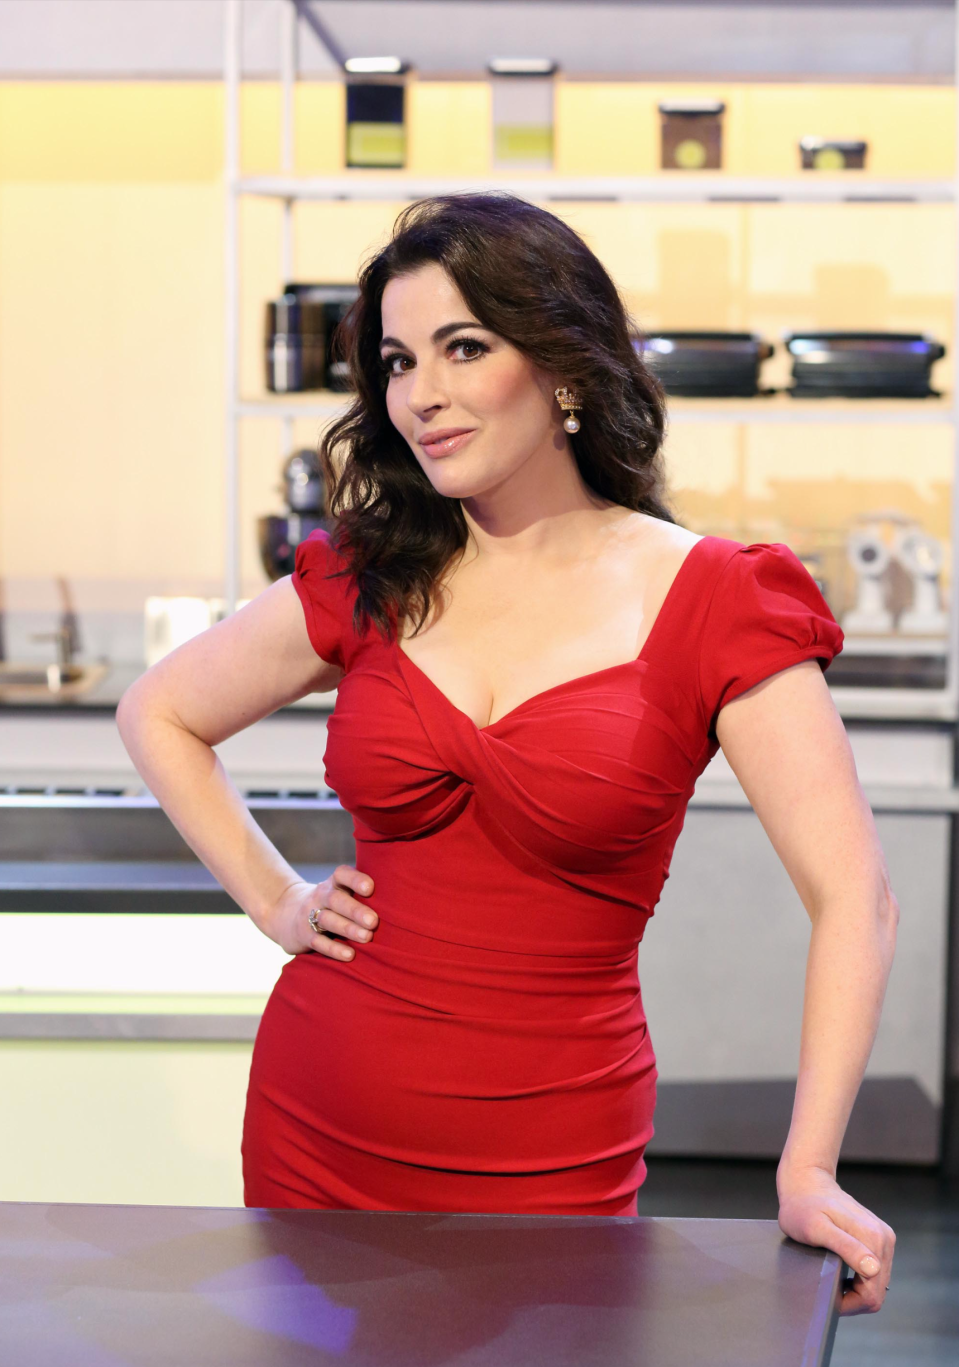 Nigella Lawson, pictured in 2013 during filming of 'The Taste'. [Photo: Rex]